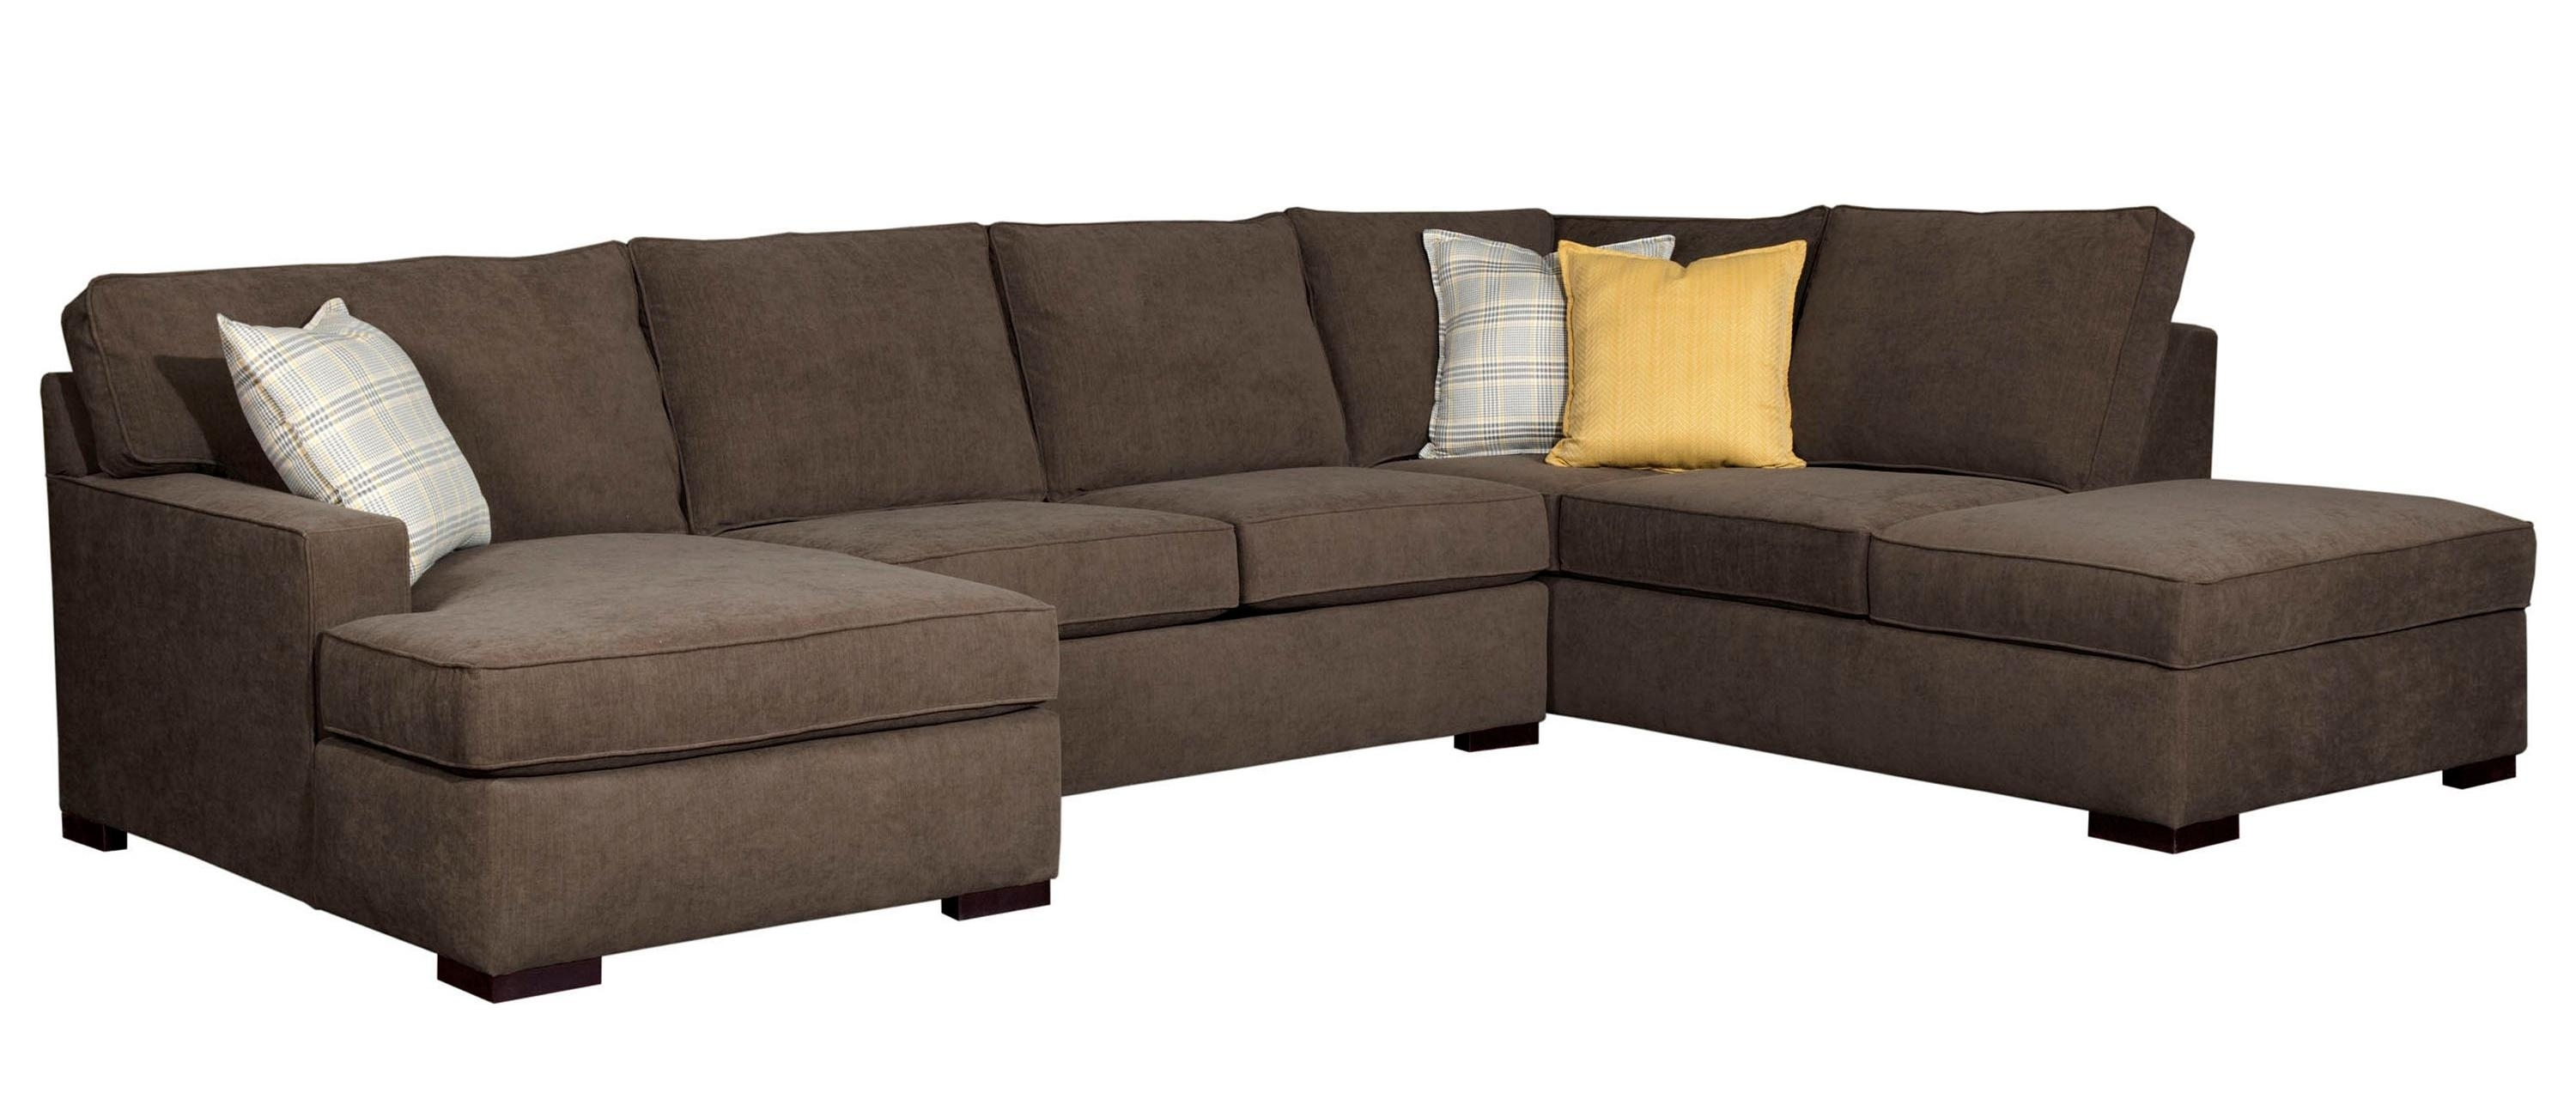 Broyhill Furniture Raphael Contemporary Sectional Sofa With Laf With Regard To Norfolk Grey 6 Piece Sectionals With Raf Chaise (View 20 of 25)